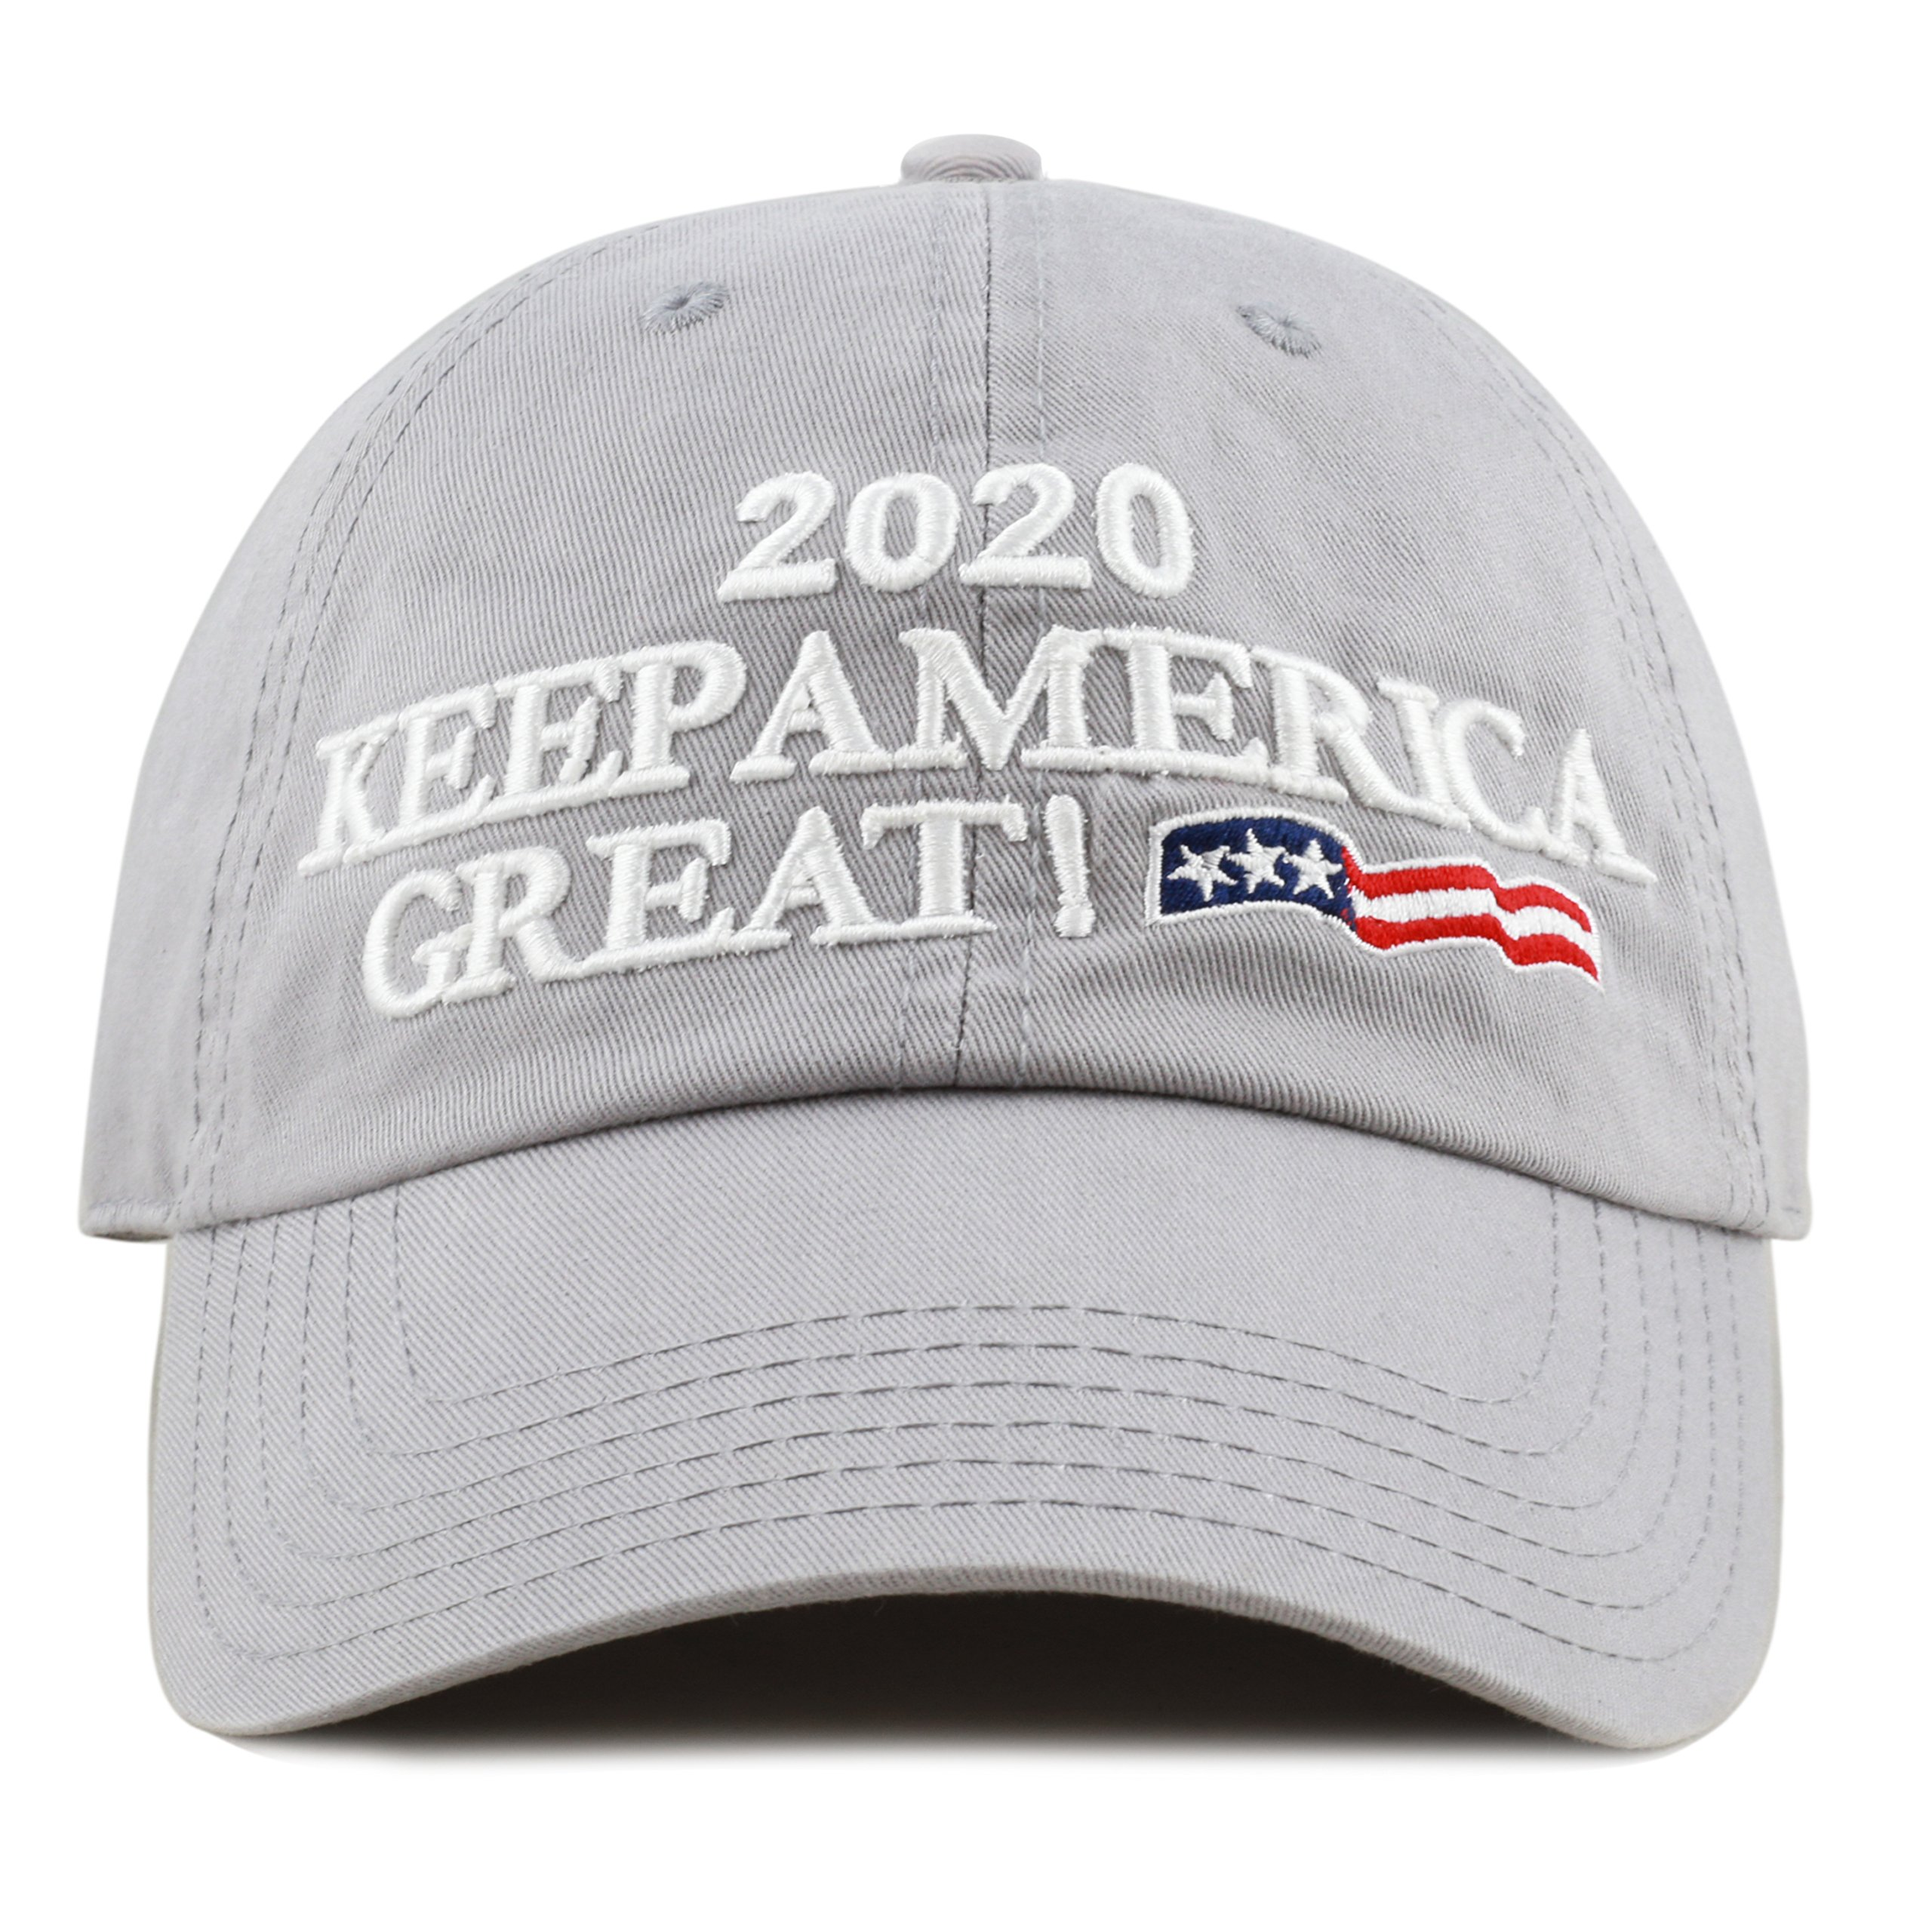 aa1bdd9160e THE HAT DEPOT Trump 2020 President Campaign Flag Washed Cotton Unstructured  Cap (Grey)